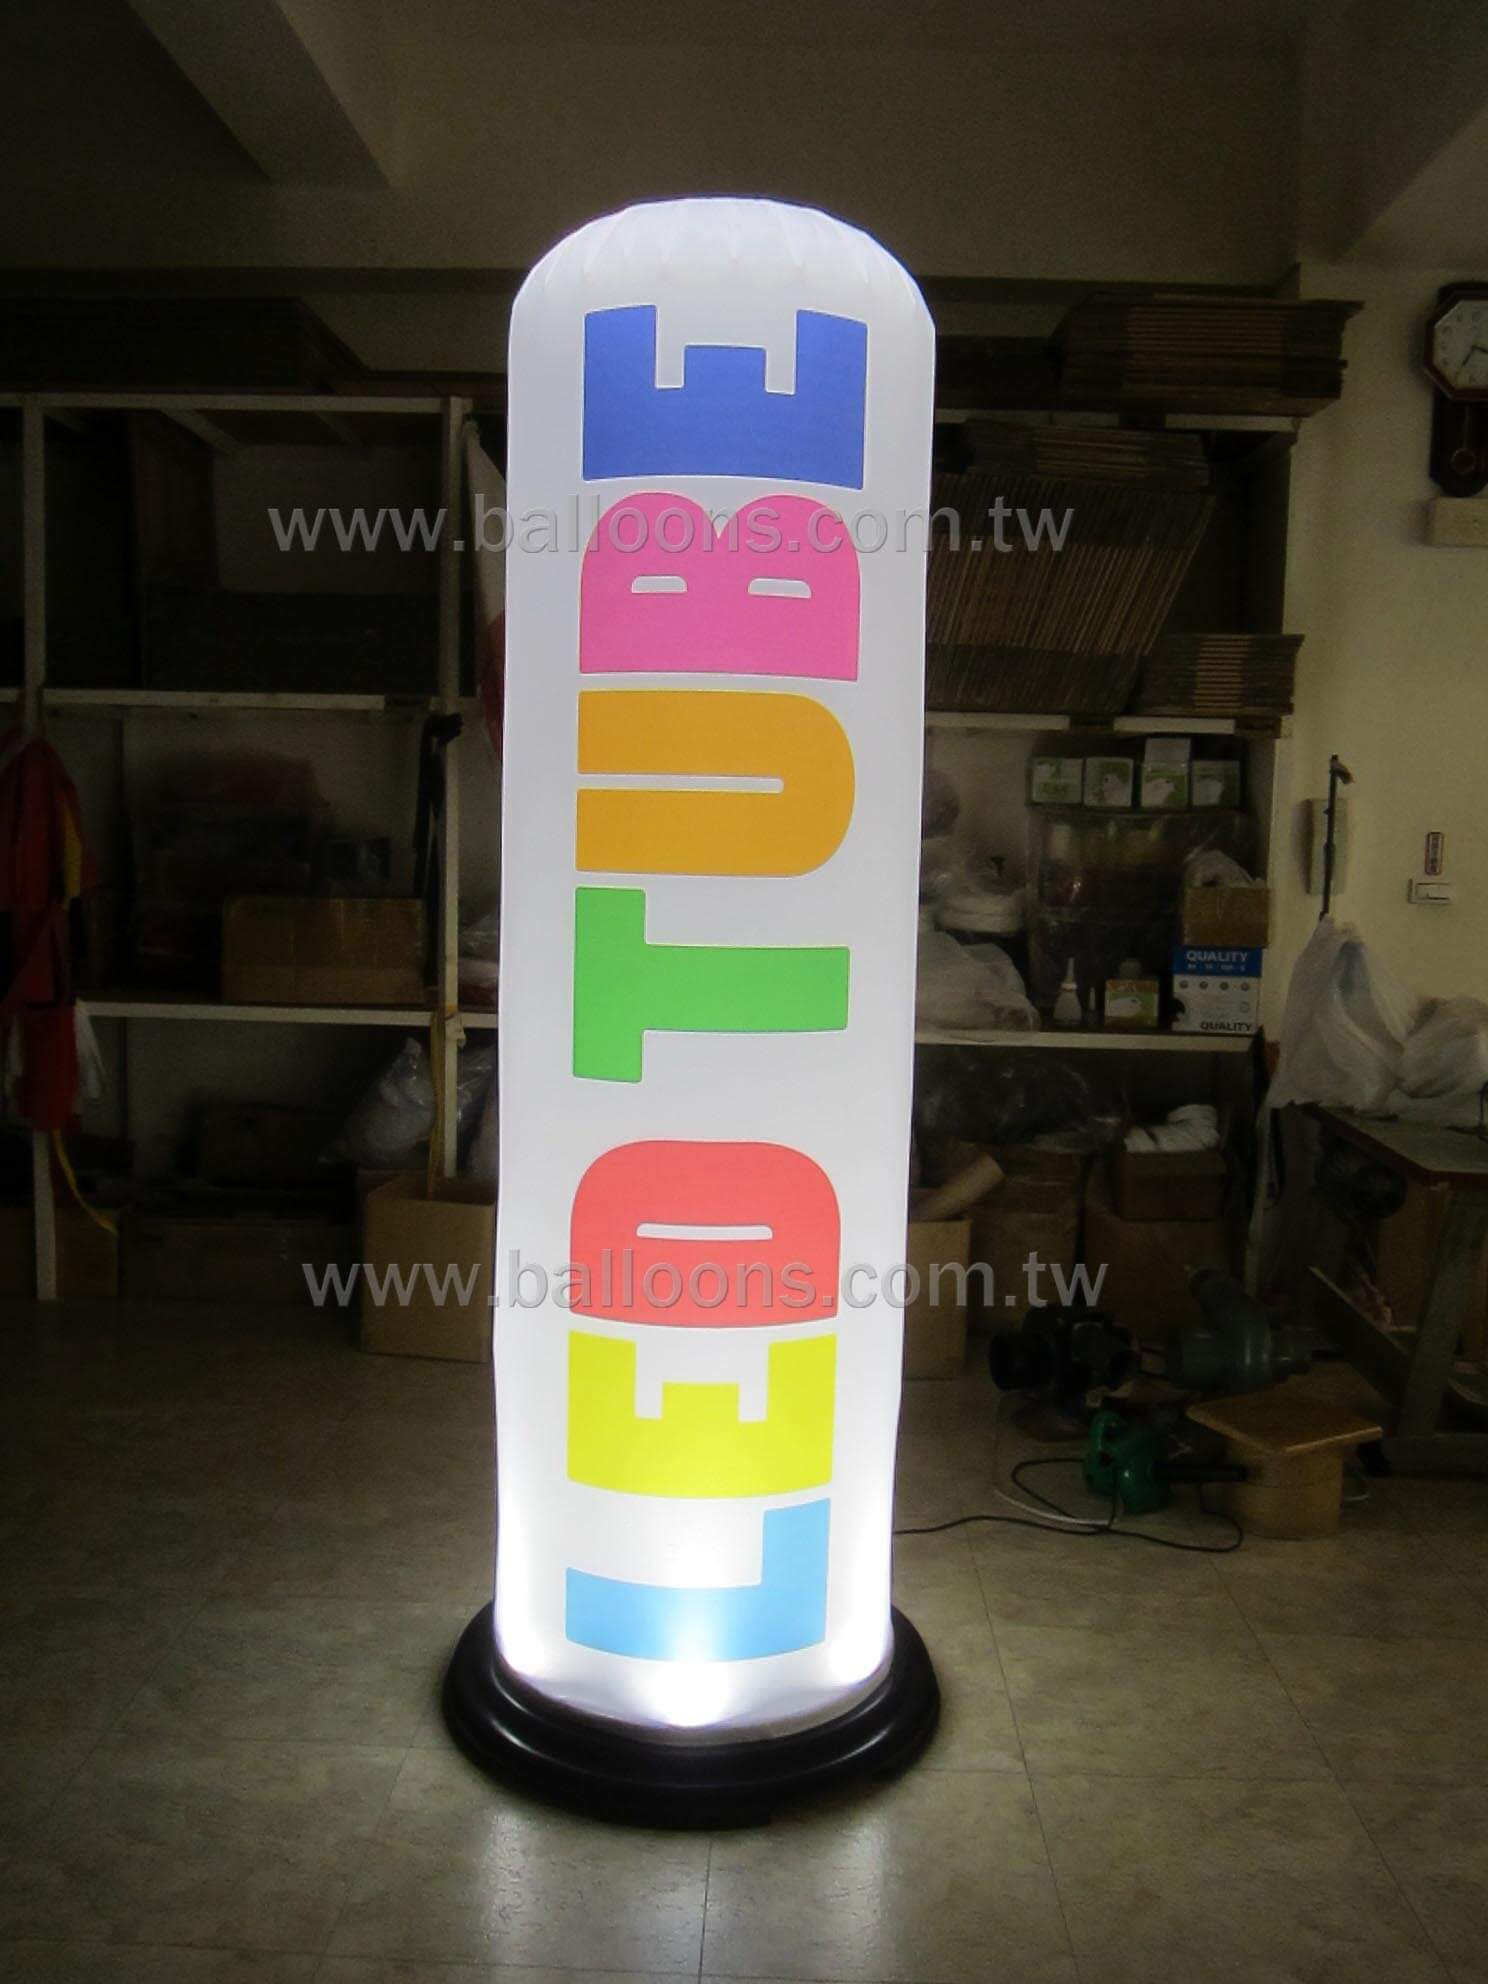 LED lighted plate for air filled advertising balloons持續充氣式發亮燈盤廣告氣球